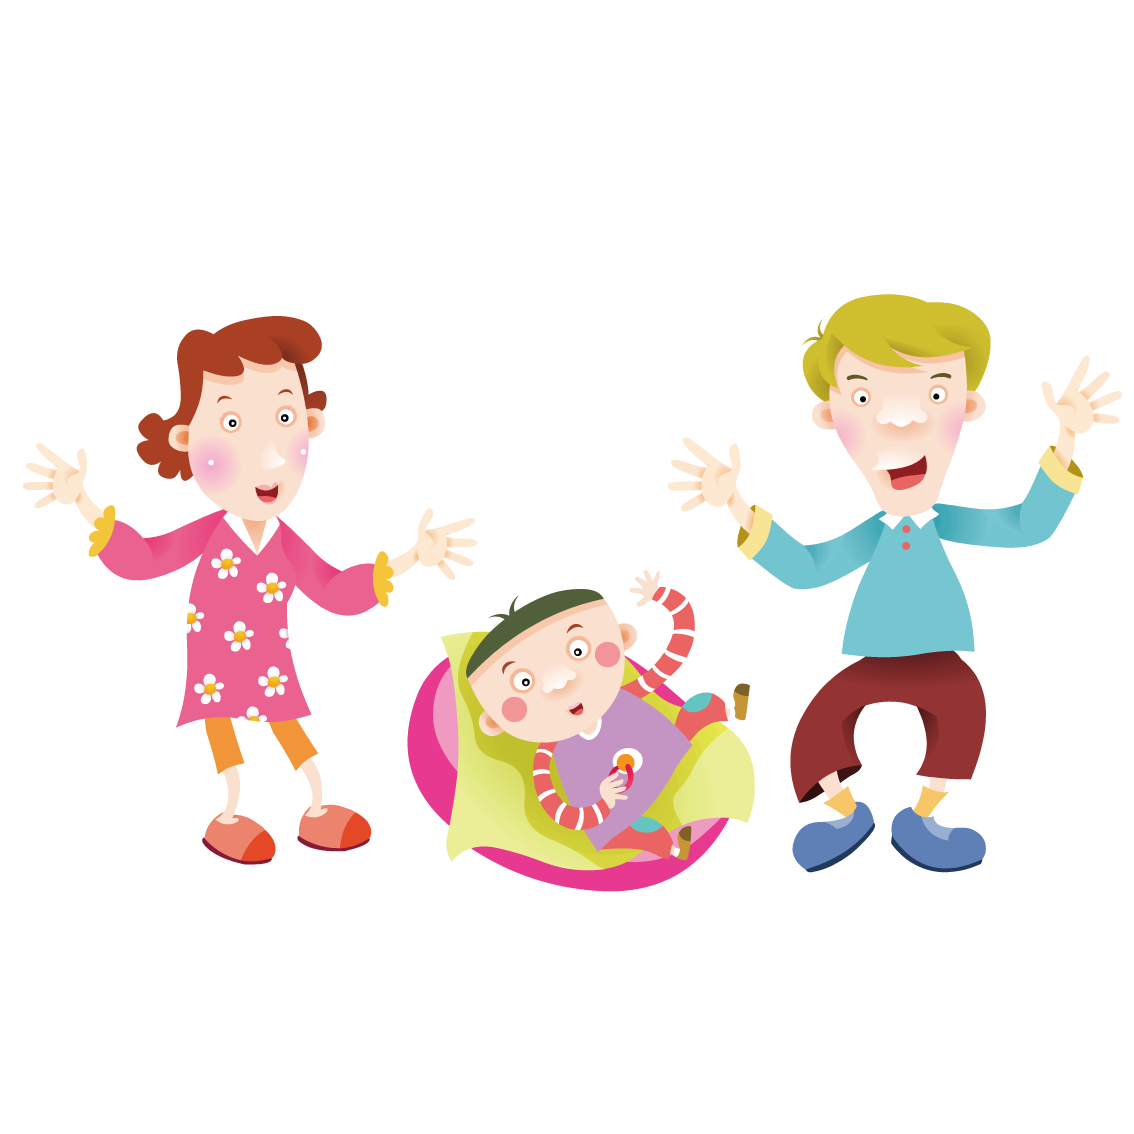 Parent clipart child drawing. Cartoon looking at the